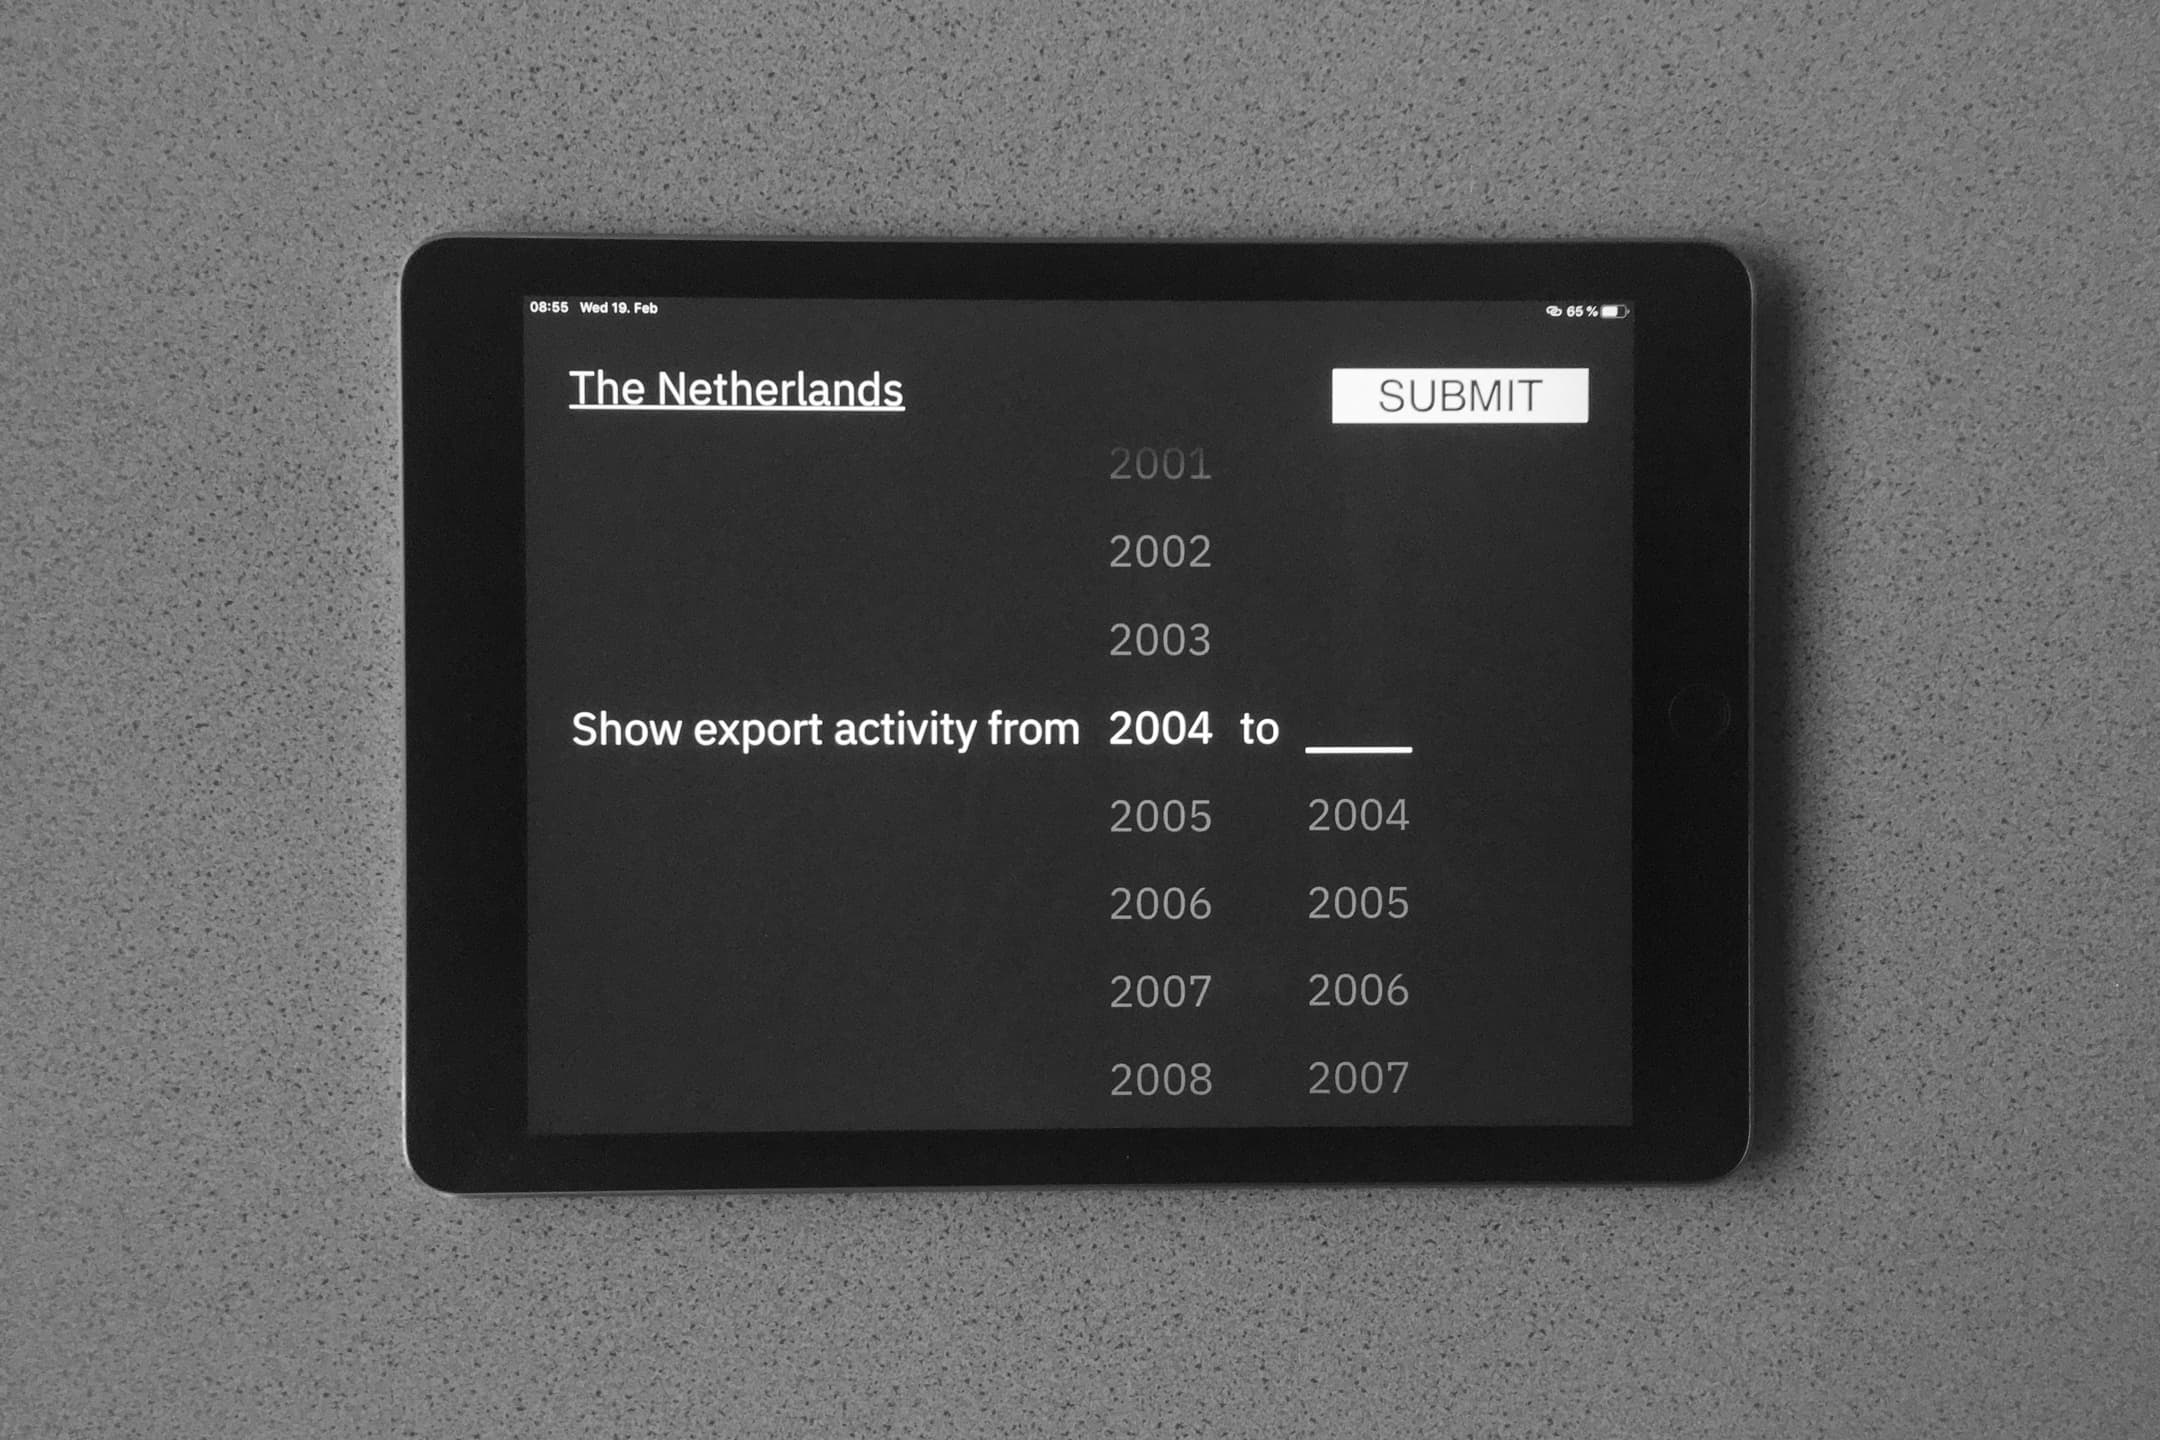 iPad screen: selecting a time range (in years) for export activity to be displayed